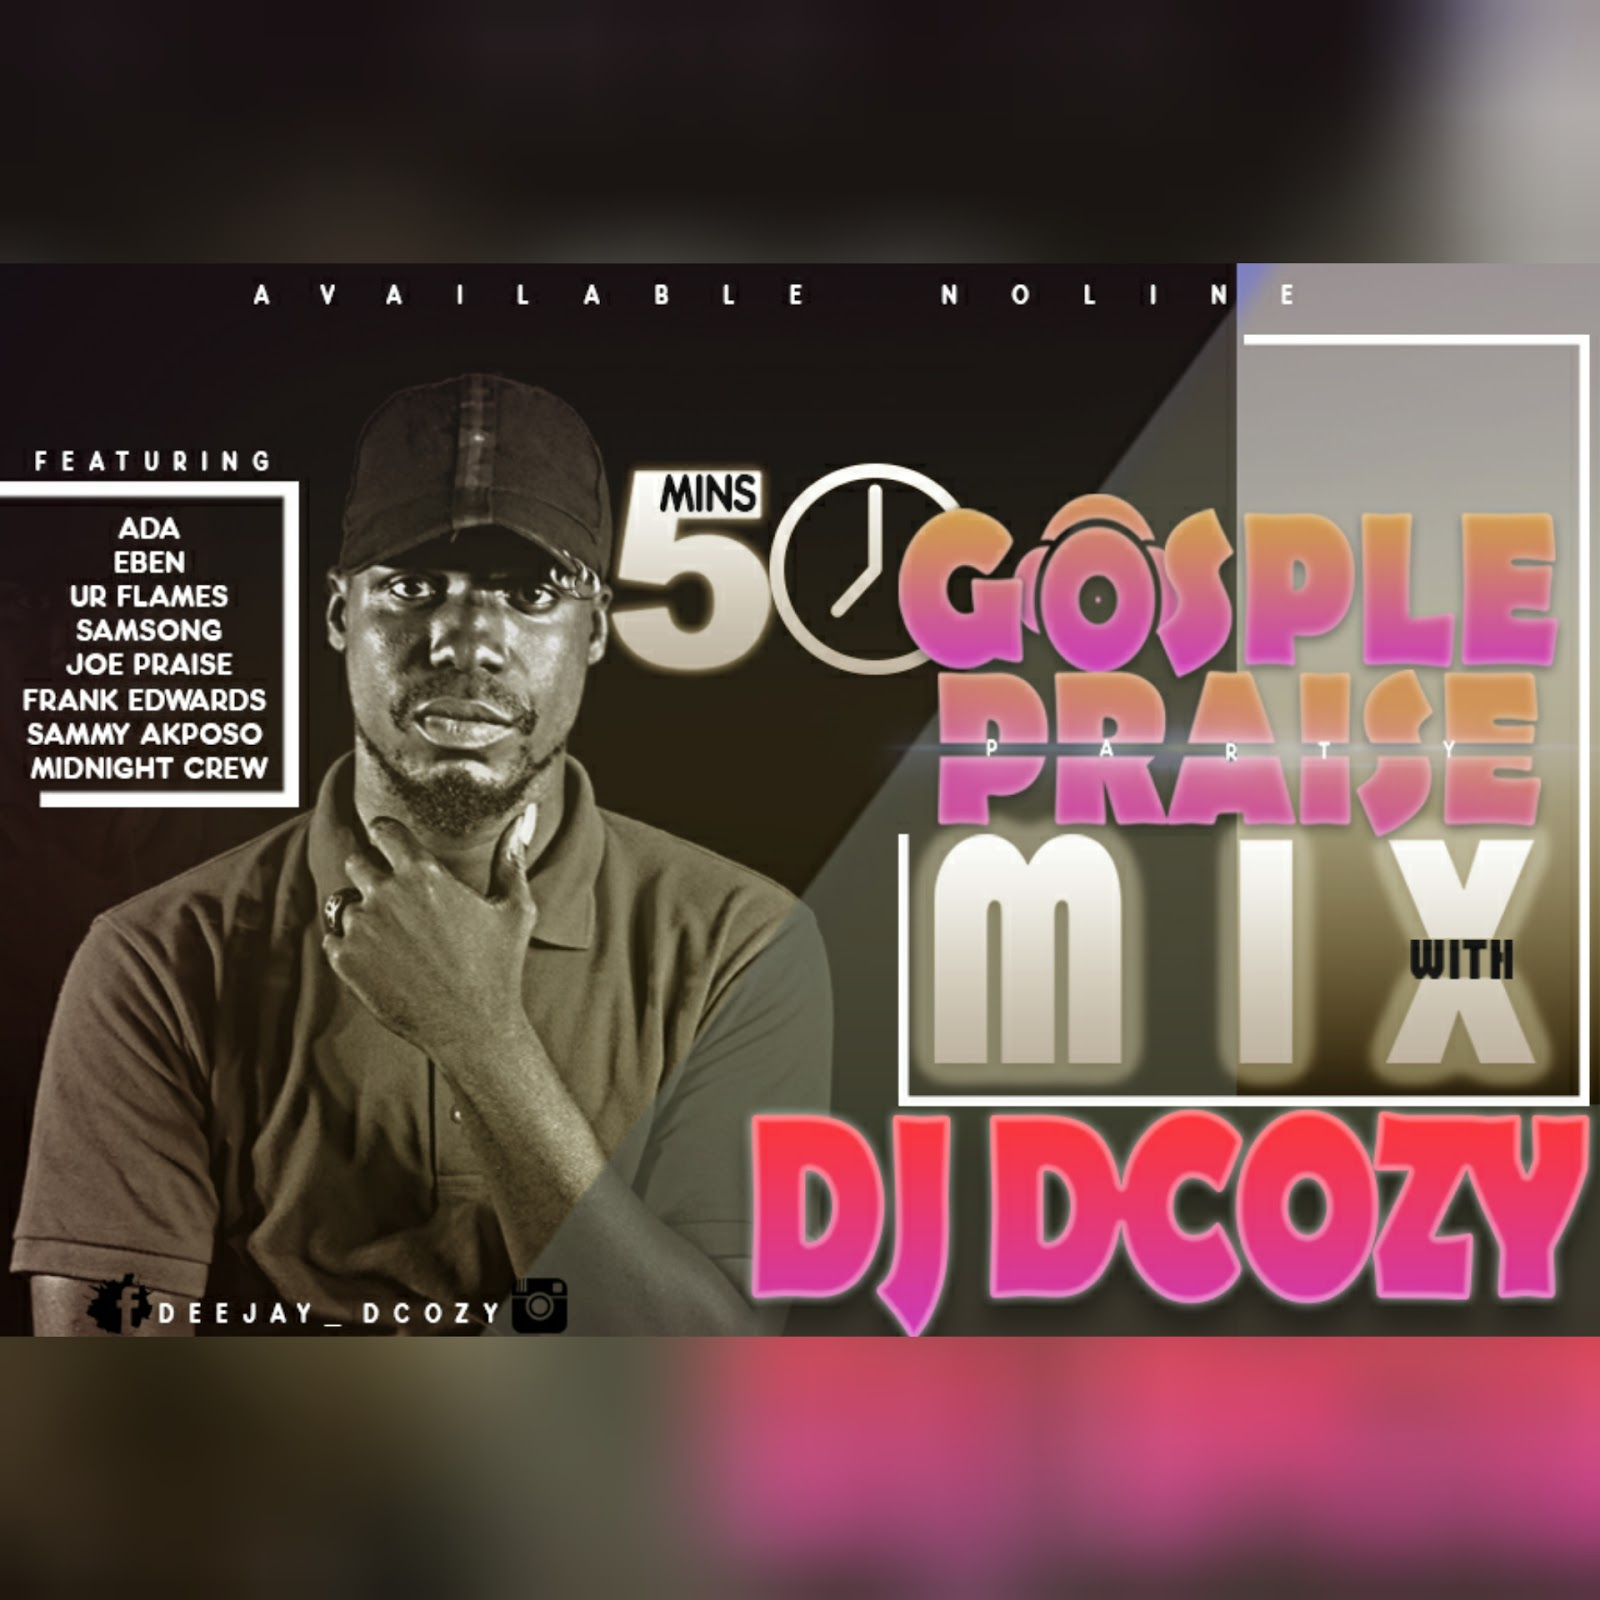 DJ Mix] DJ DCOZY- GOSPEL WORSHIP MIX | Vibemusicblog